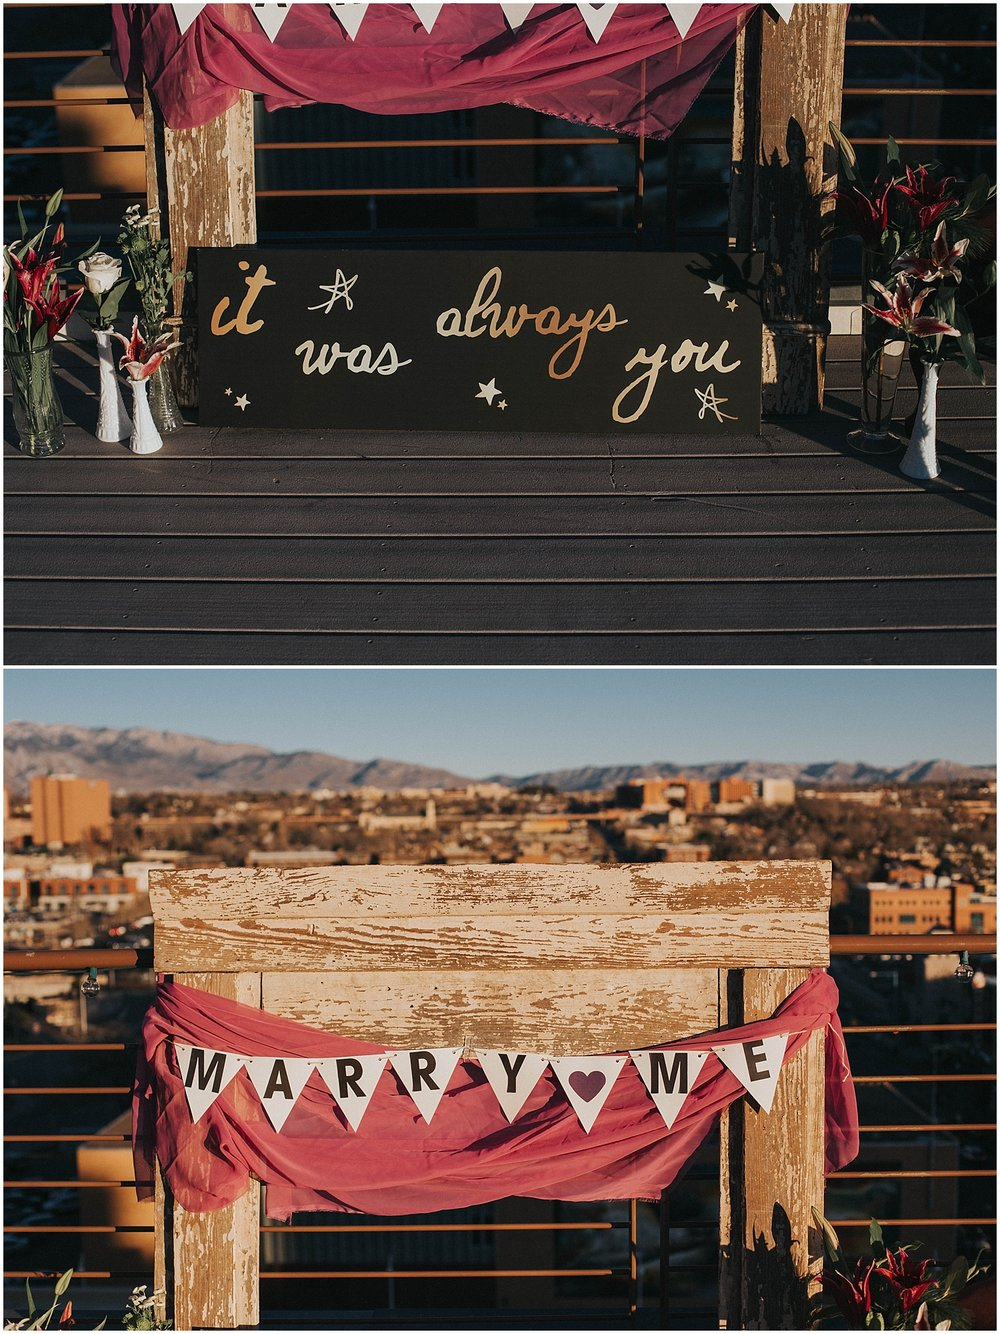 Banque-Lofts-Surprise-Proposal_Albuquerque-Banque-Lofts-Albuquerque-Wedding-Photographer_0003.jpg